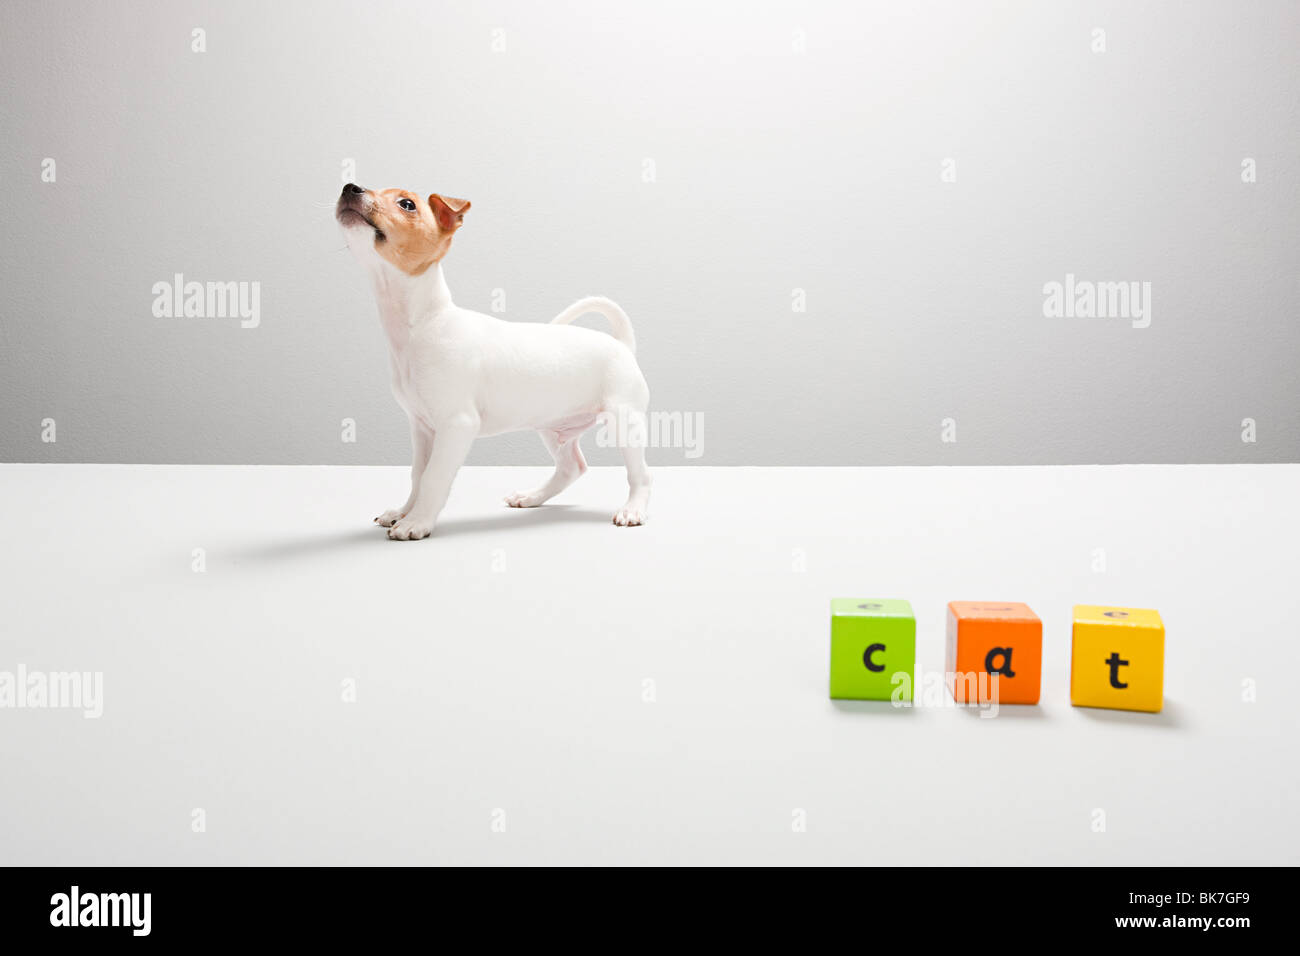 Jack russell puppy and building blocks spelling cat - Stock Image